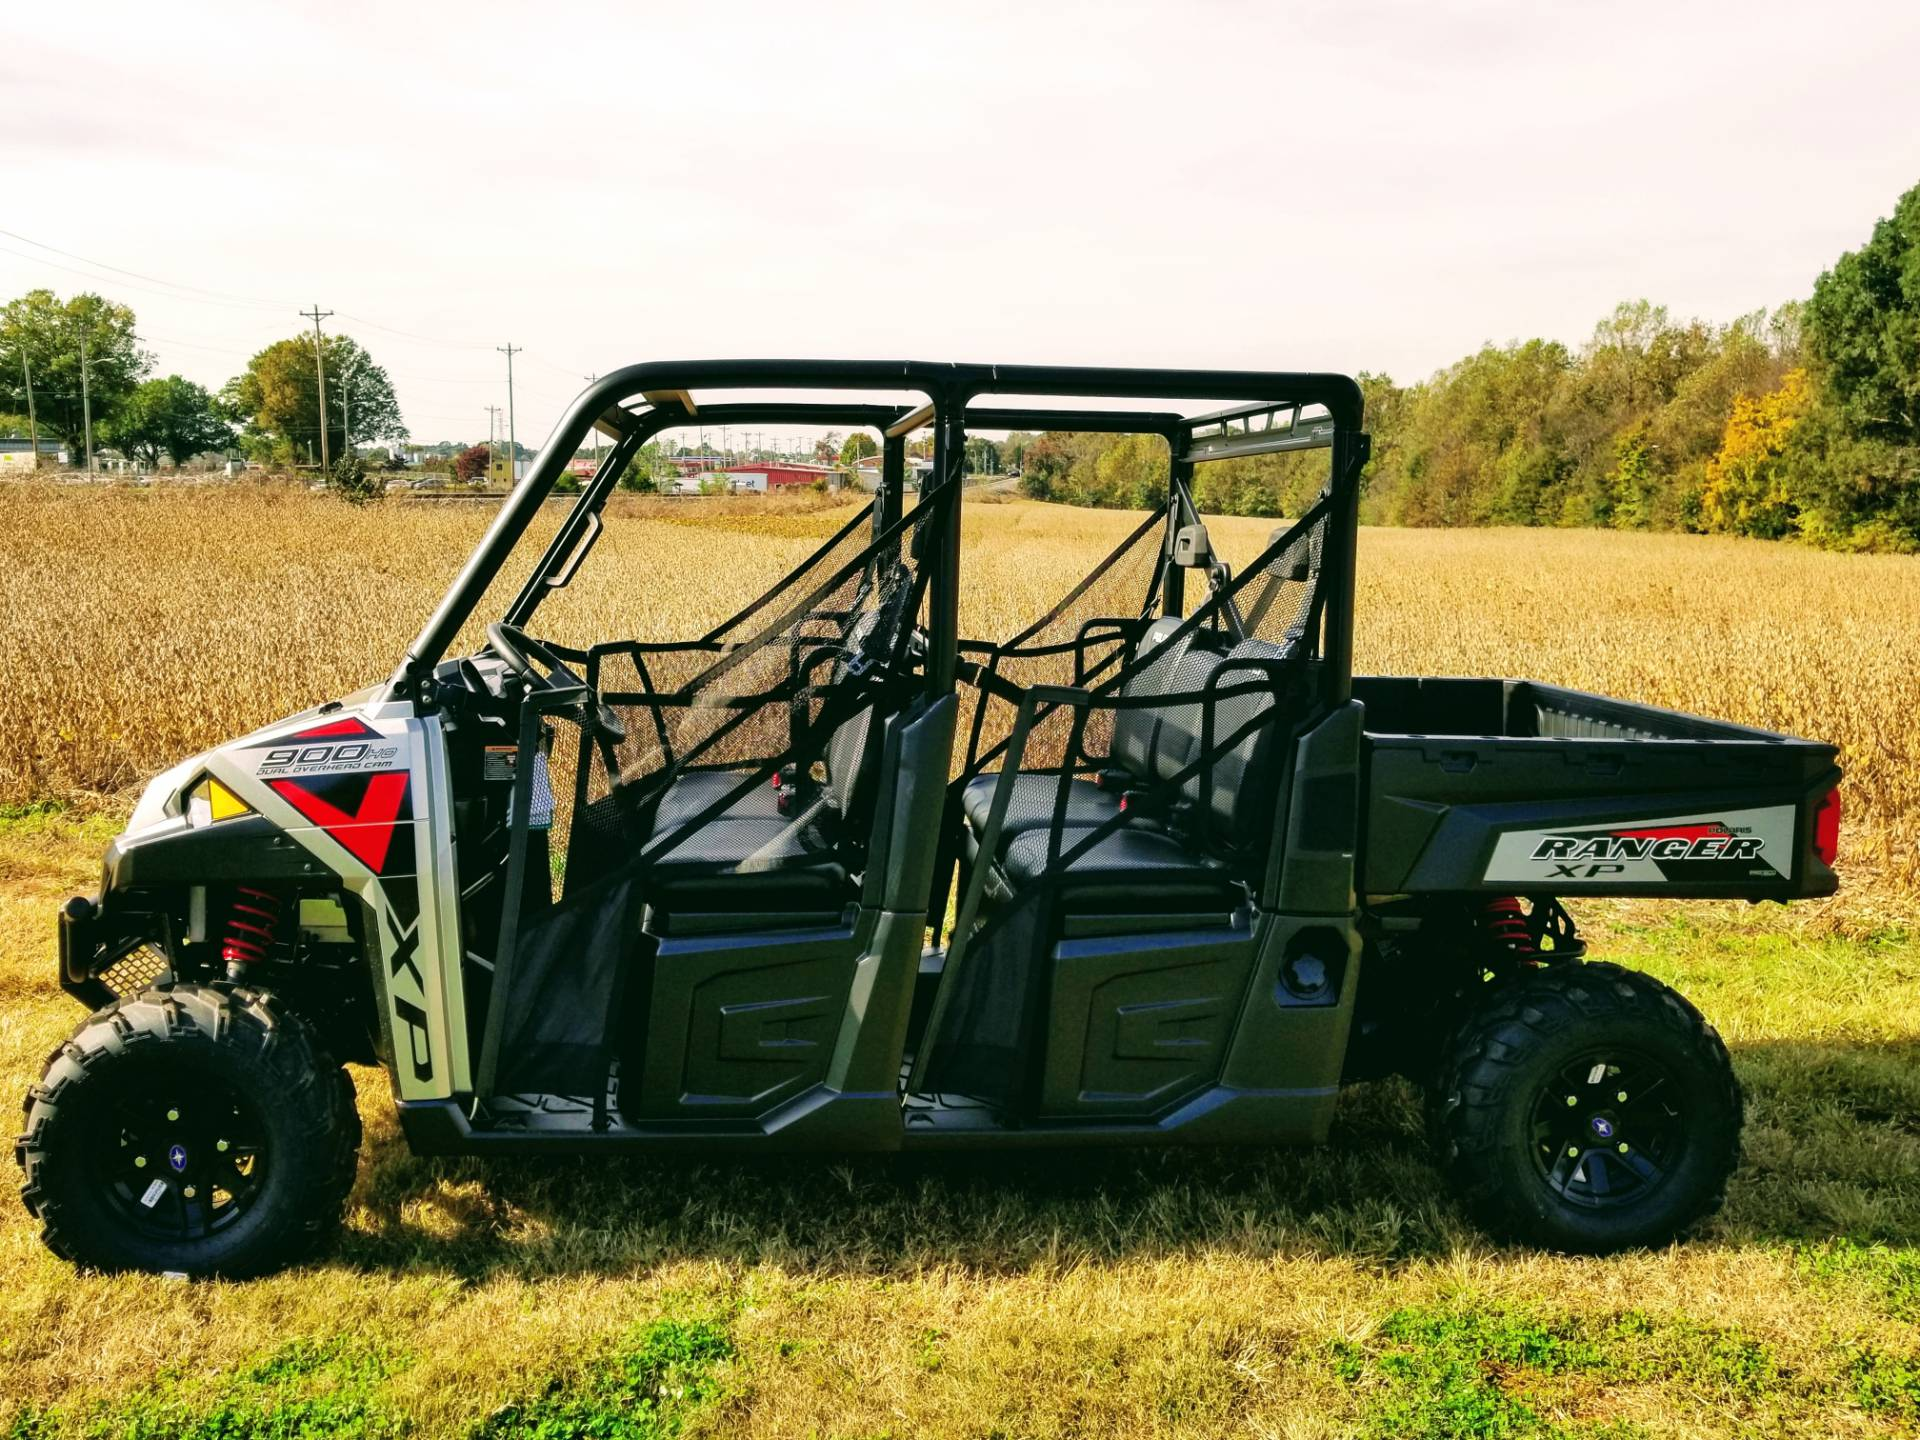 2019 Polaris Ranger Crew XP 900 EPS in Statesville, North Carolina - Photo 2